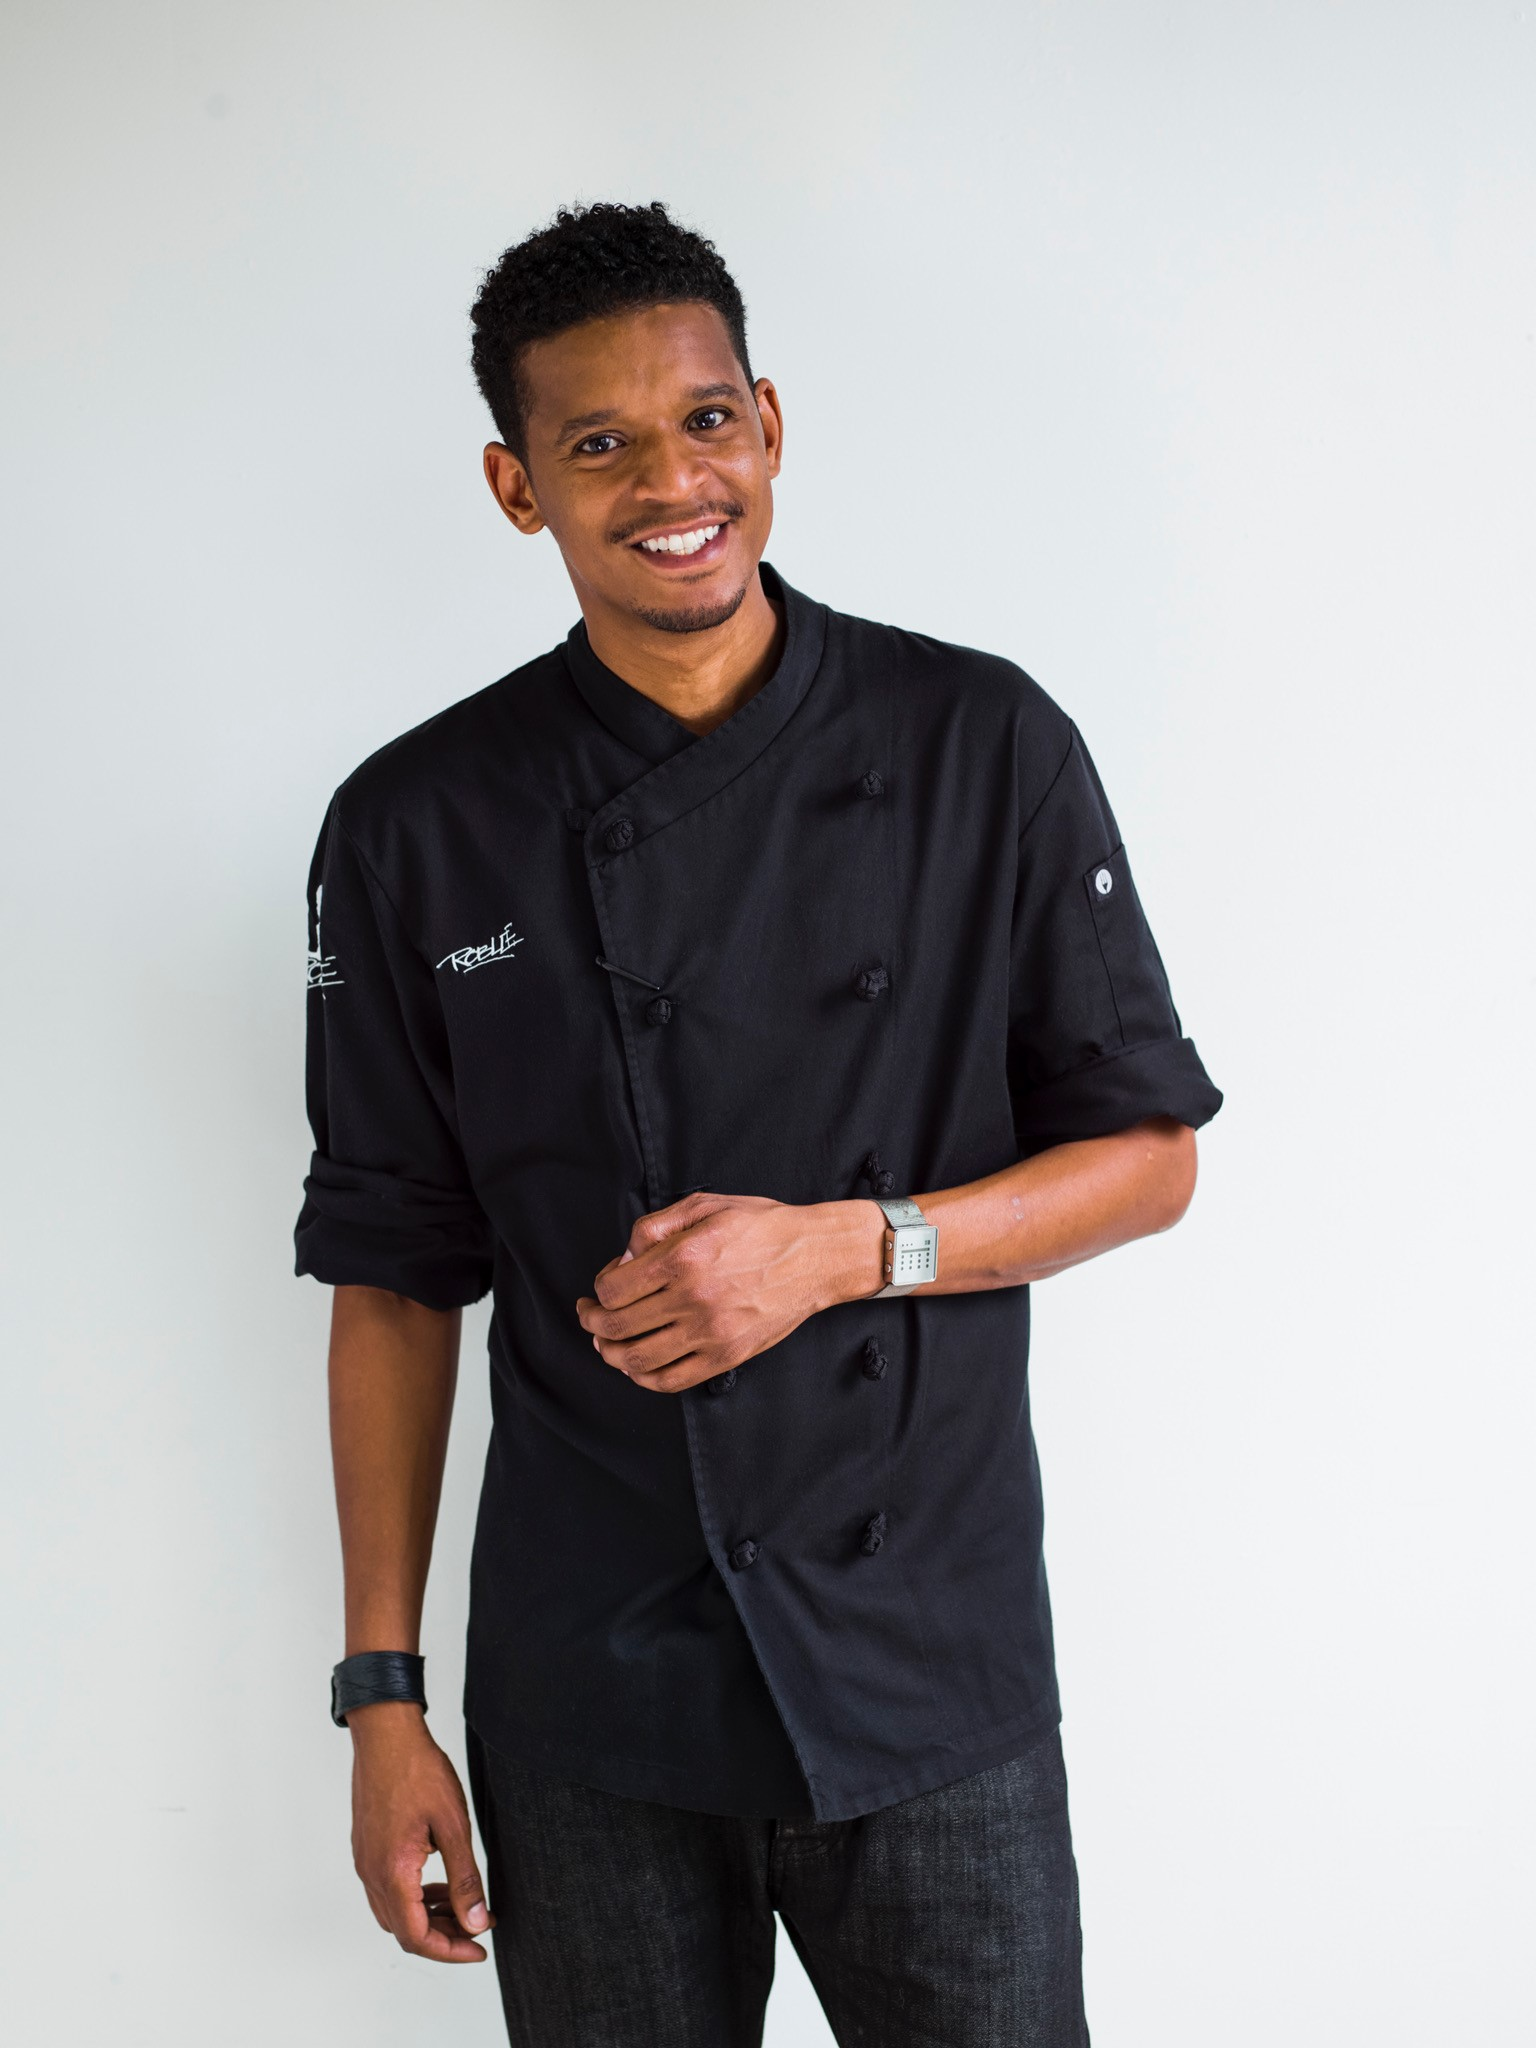 chef roble girlfriend